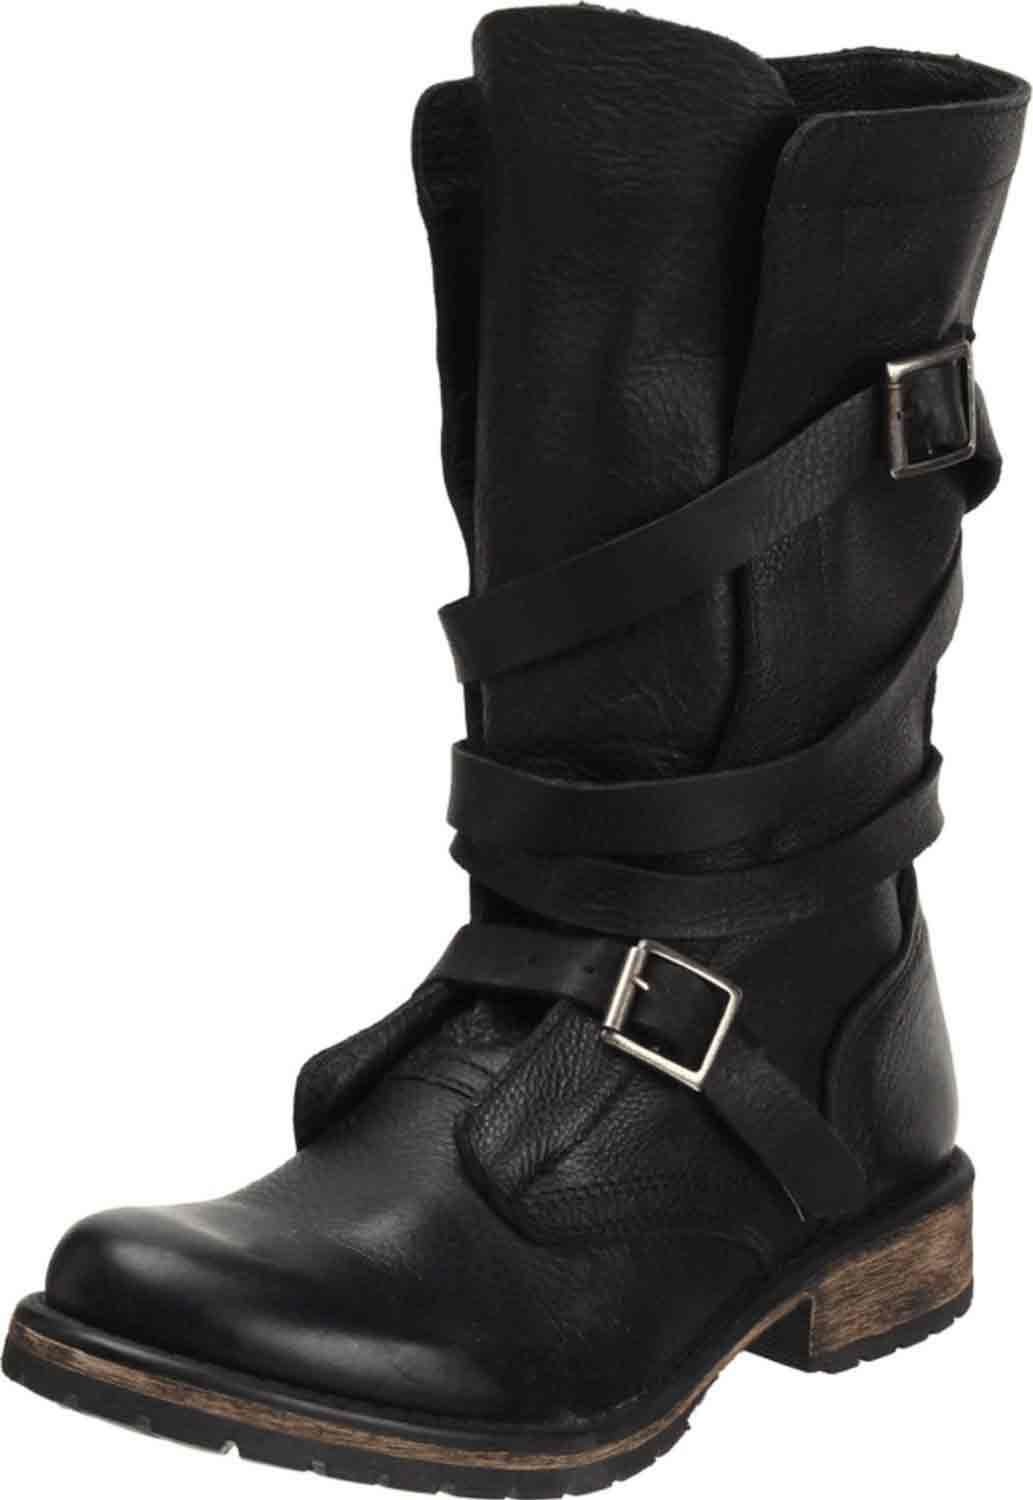 Fashionable Women Boots Steve Madden | Fashion and Beauty